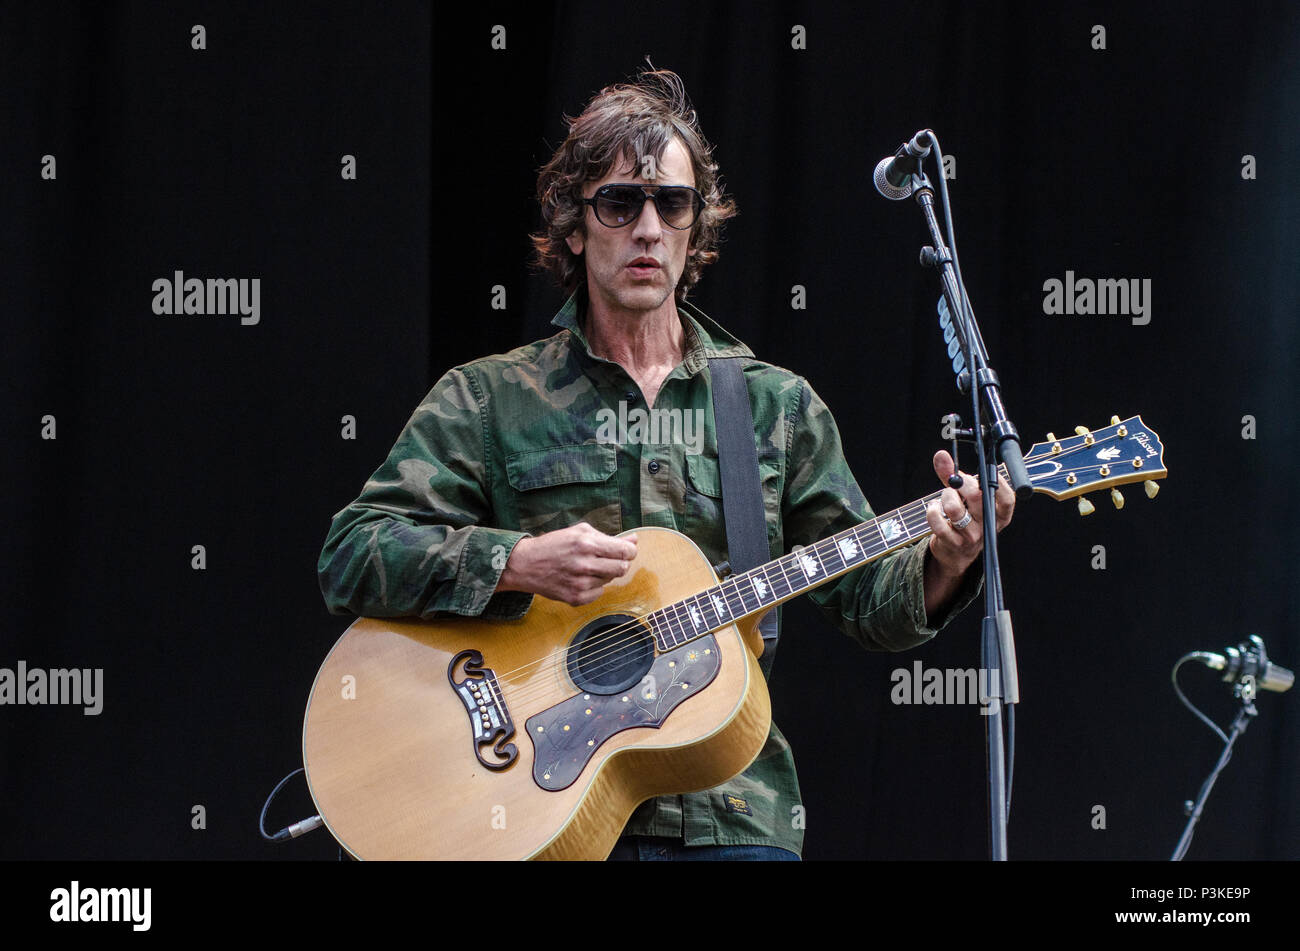 Richard Ashcroft The Verve Performing Live Stock Photo